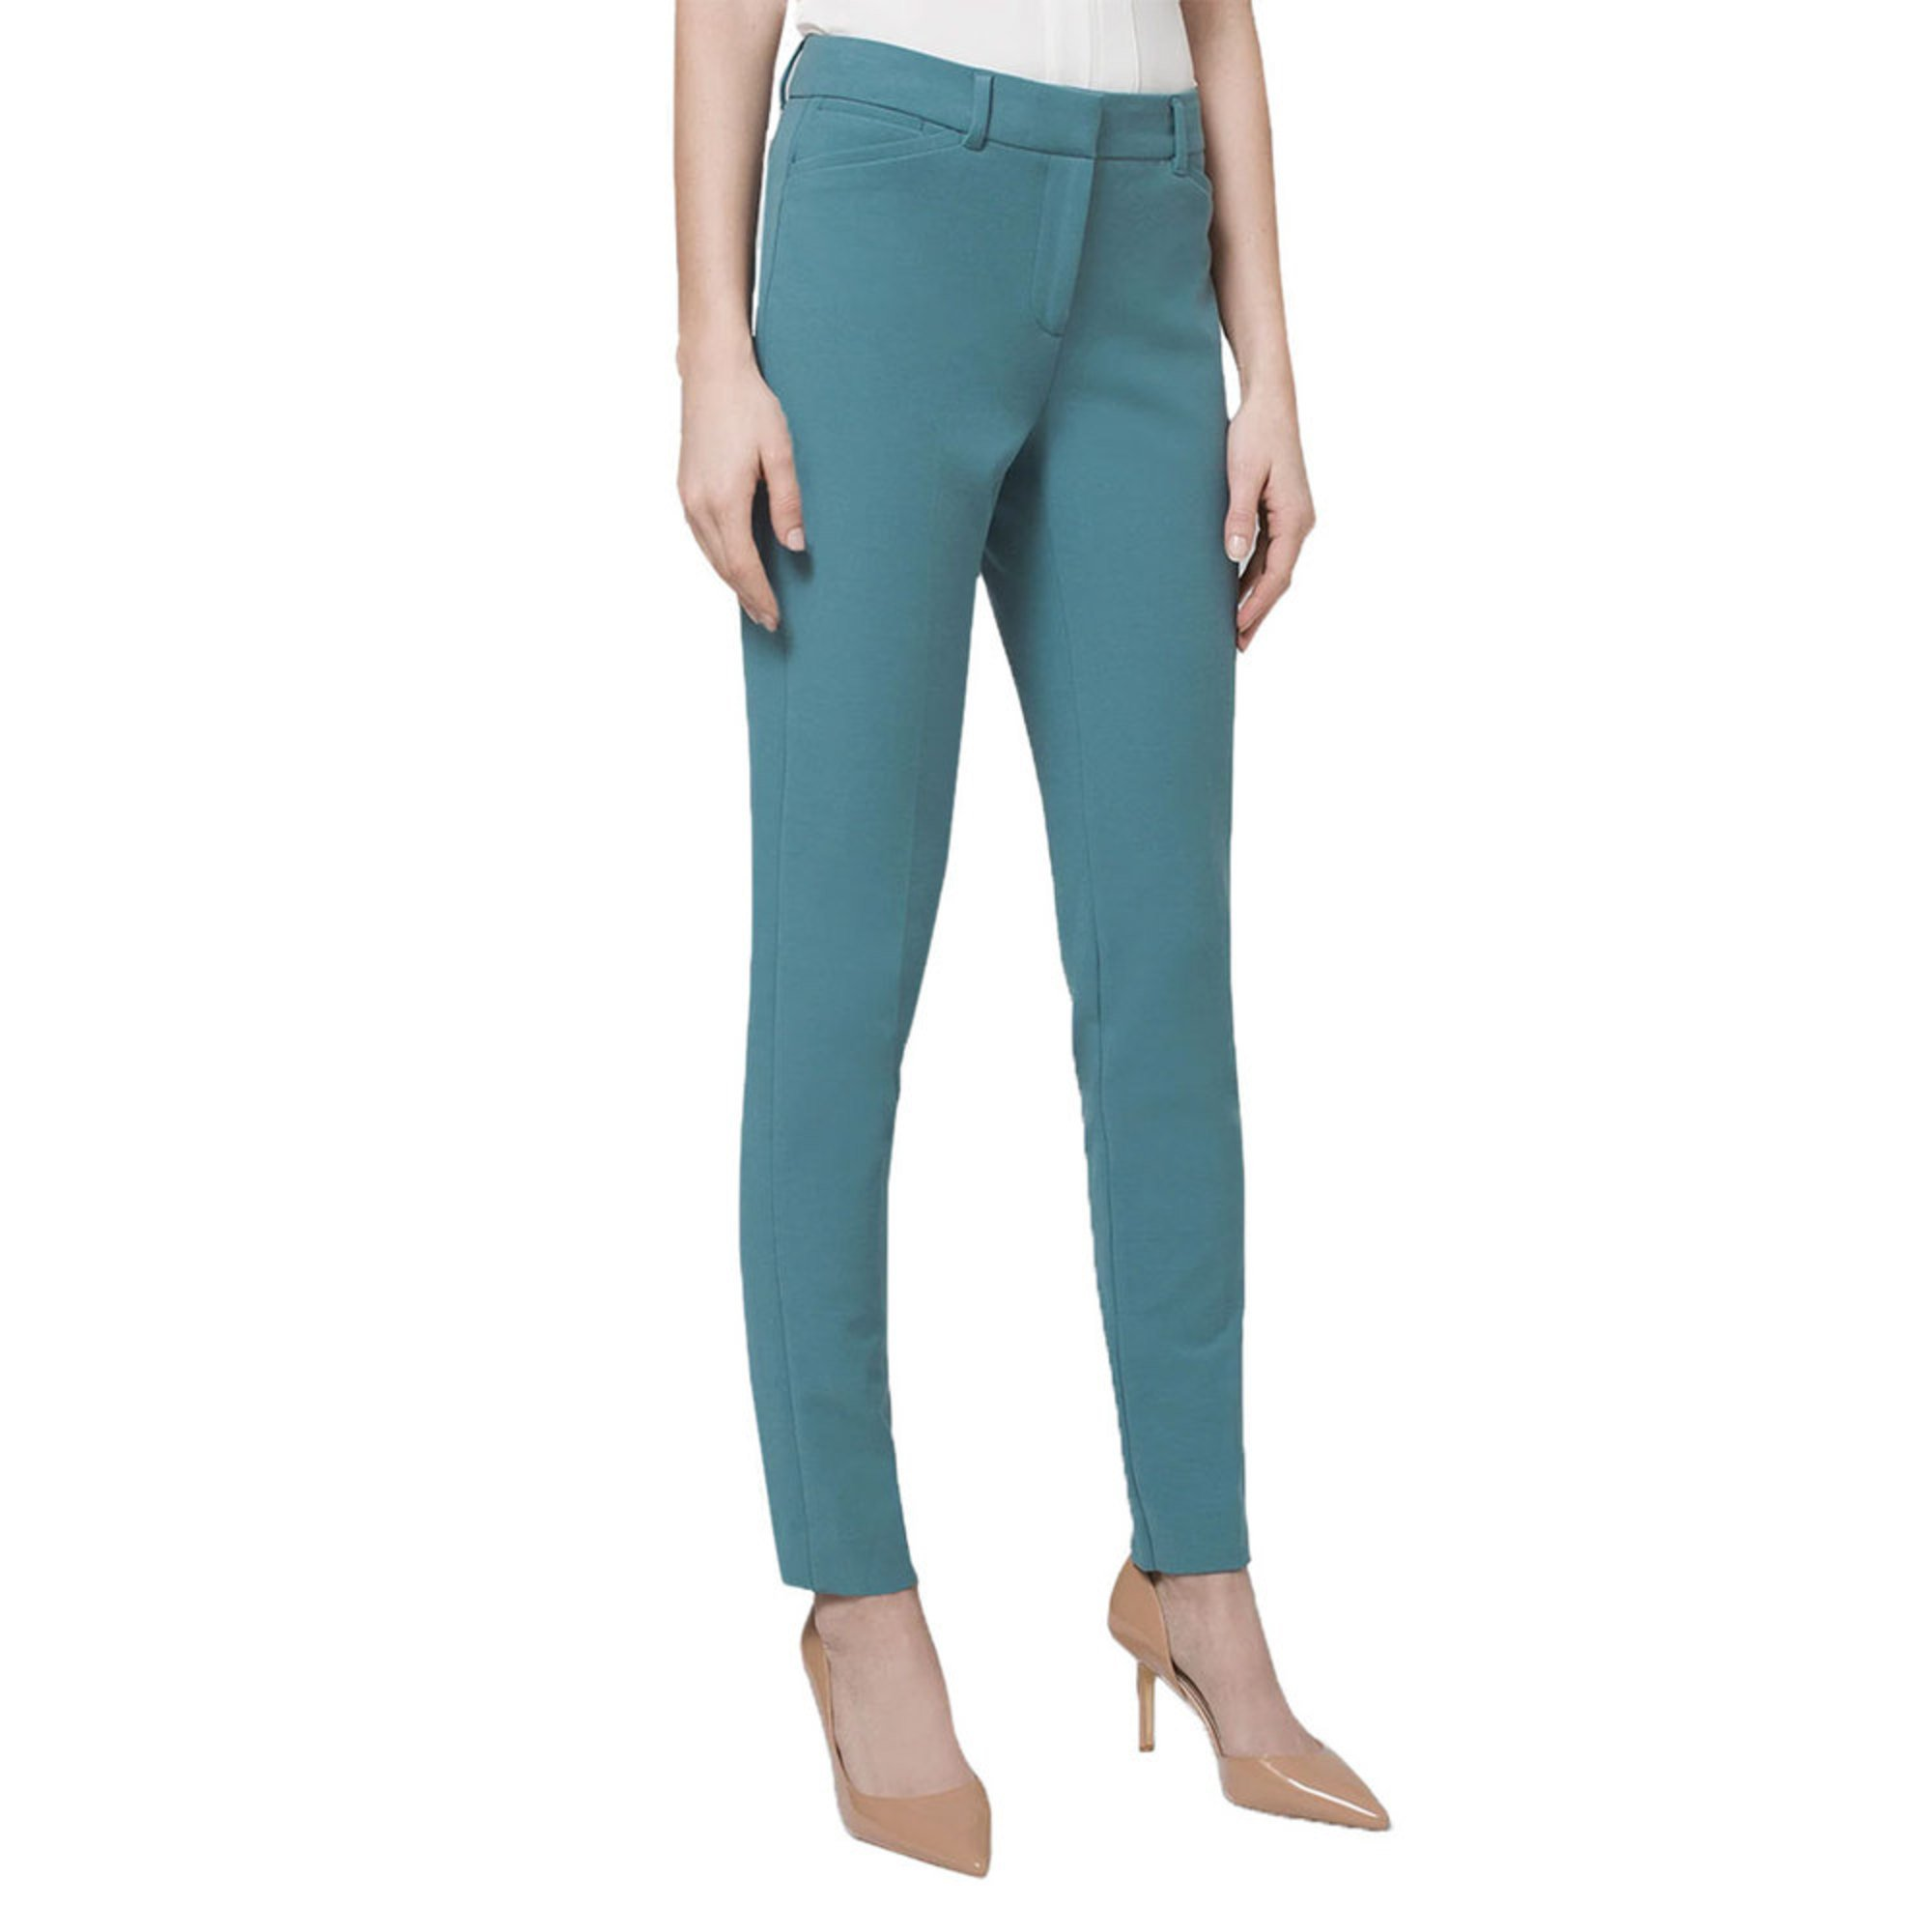 8317ee977a3 Black Dress Pants Womens With Pockets - Gomes Weine AG